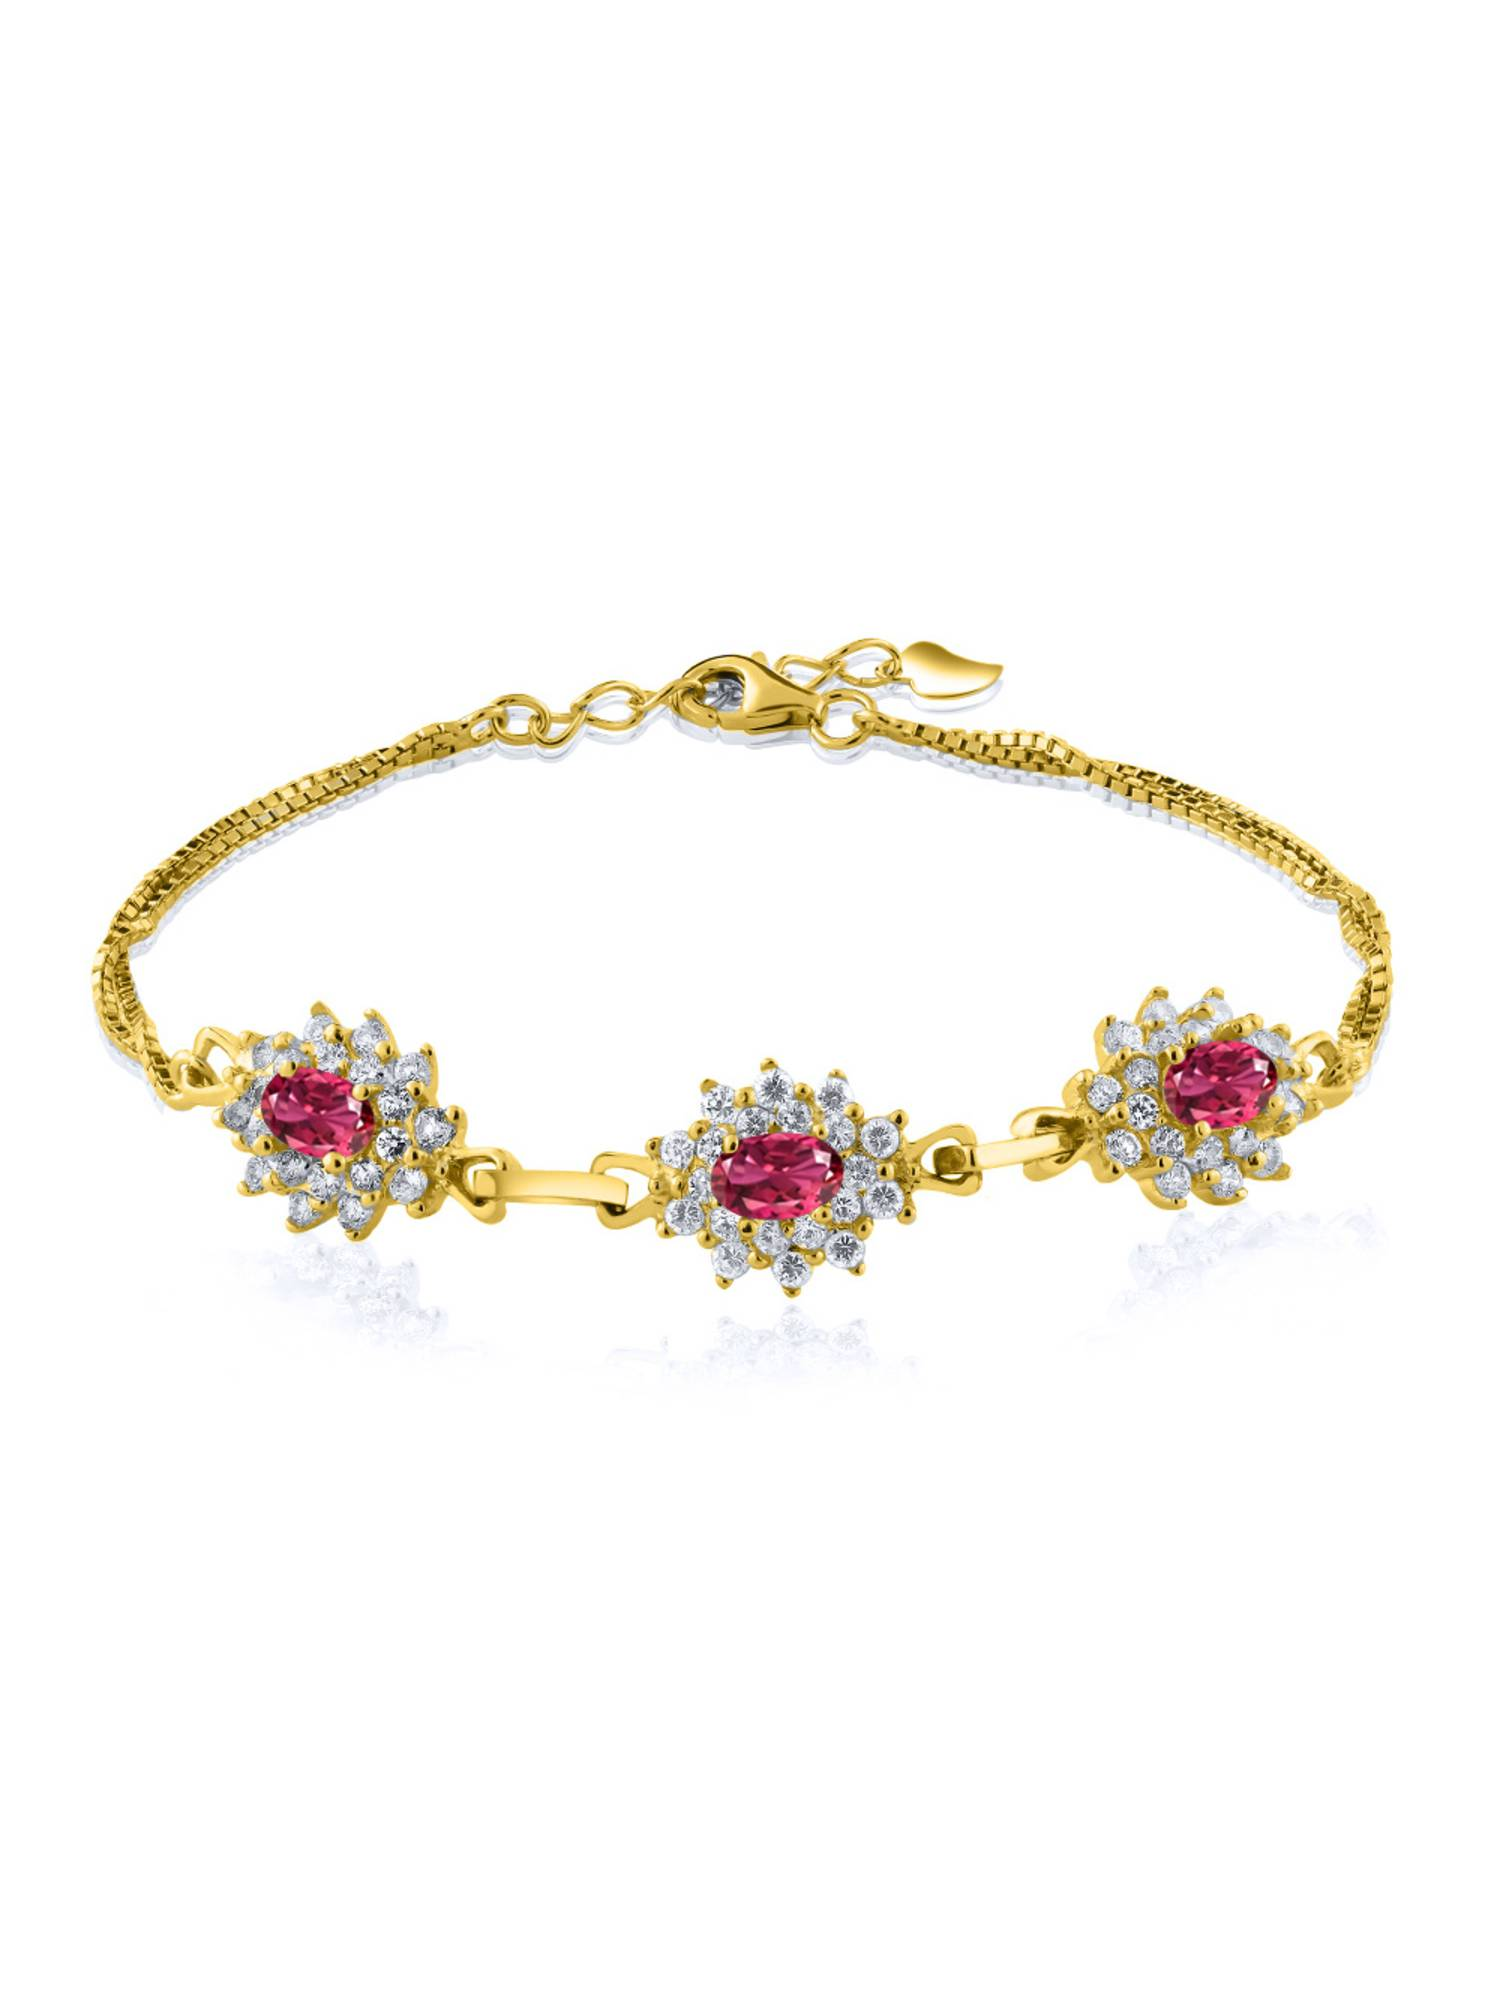 2.25 Ct Oval Pink Tourmaline 18K Yellow Gold Plated Silver Bracelet by